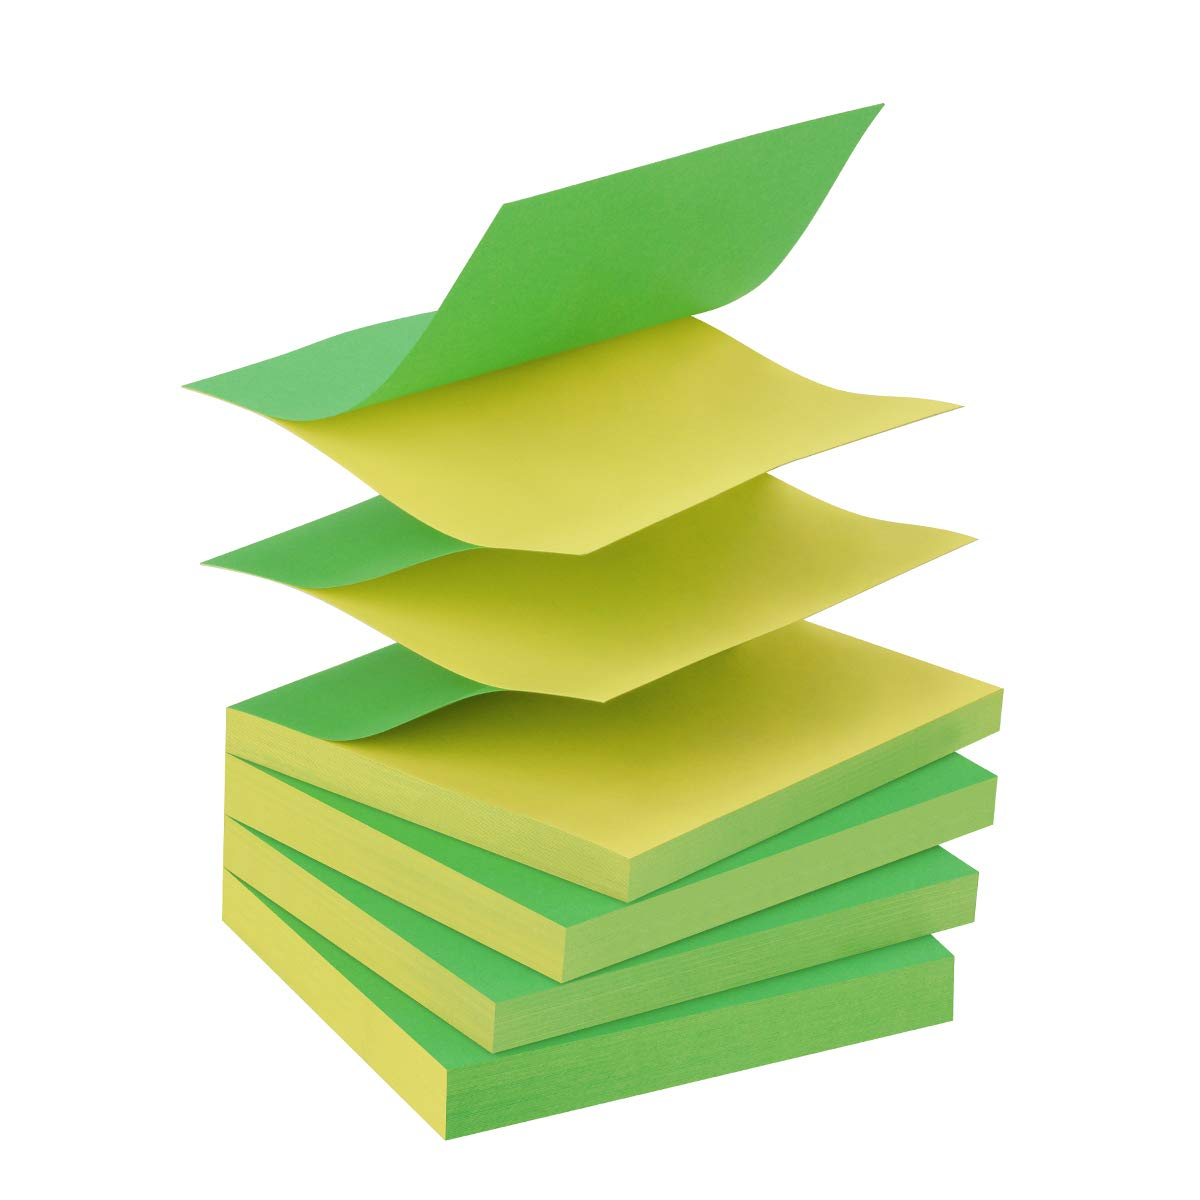 ZCZN Pop-up Sticky Notes 3 x 3 Inches, 4 Pads Bright Color Self-Stick Notes, 80 Sheets/Pad, Green and Yellow